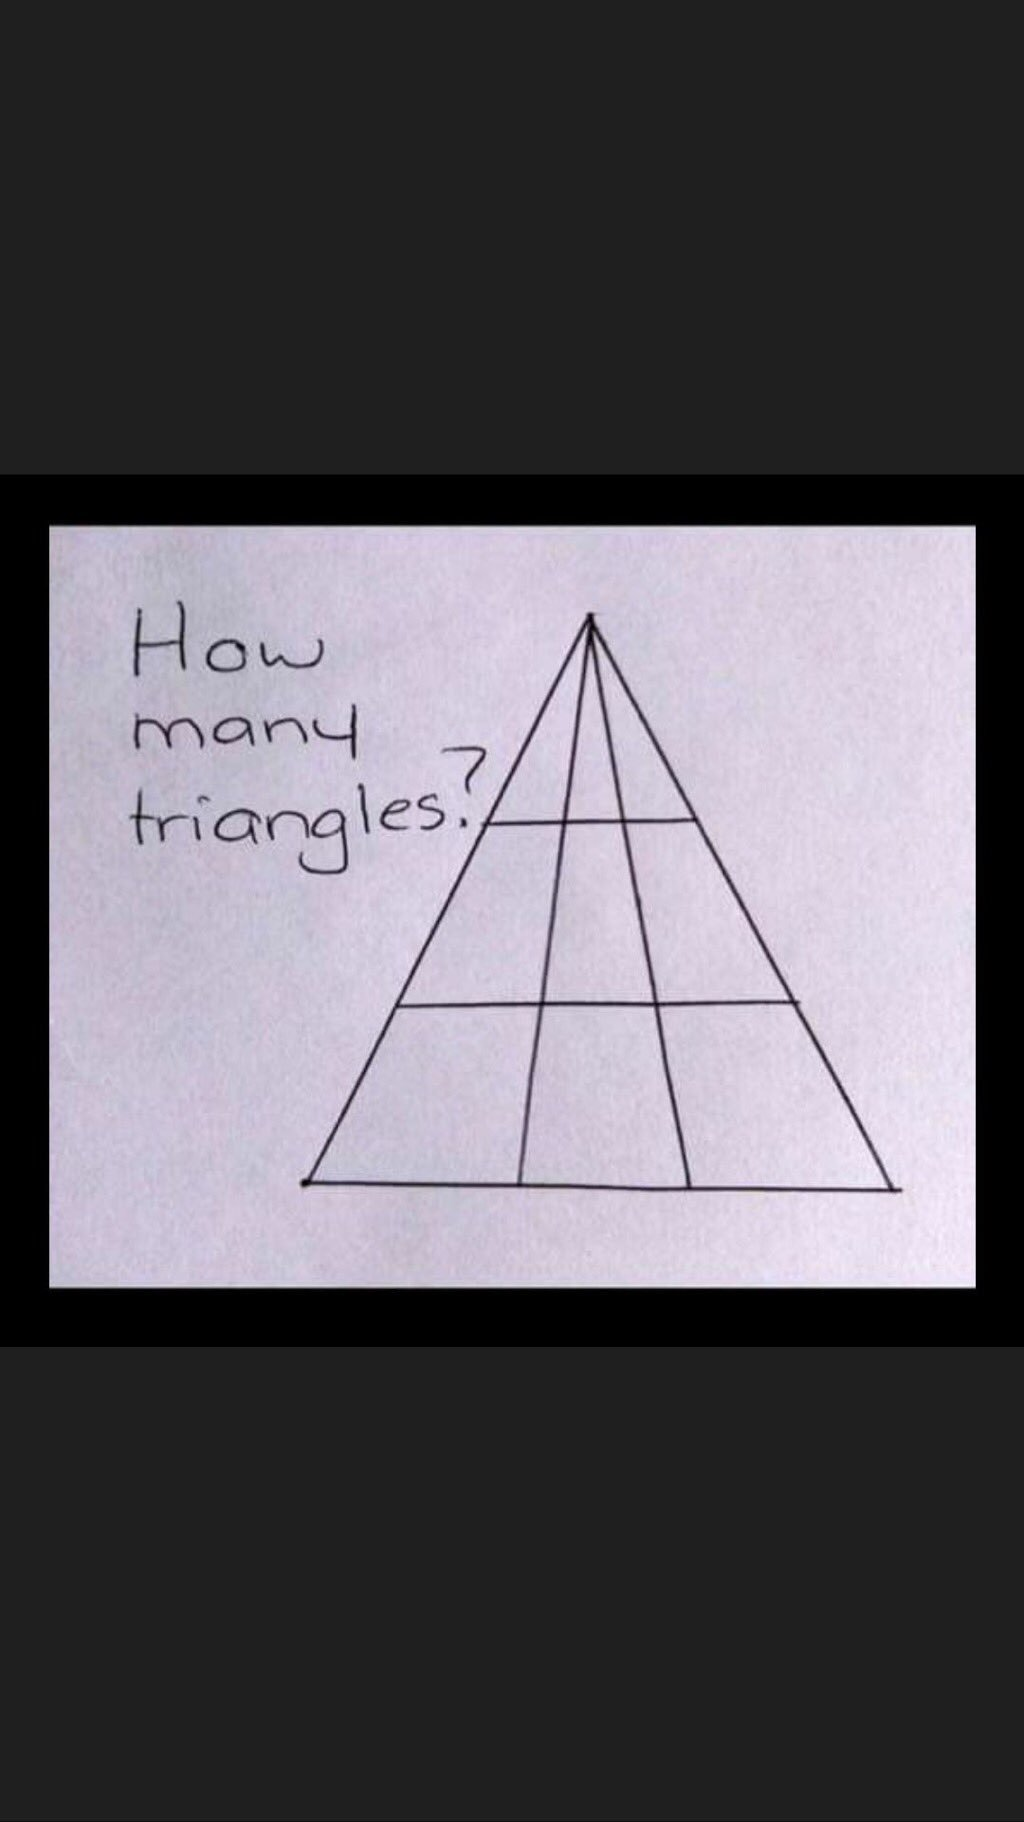 One image of simple triangle math puzzle.